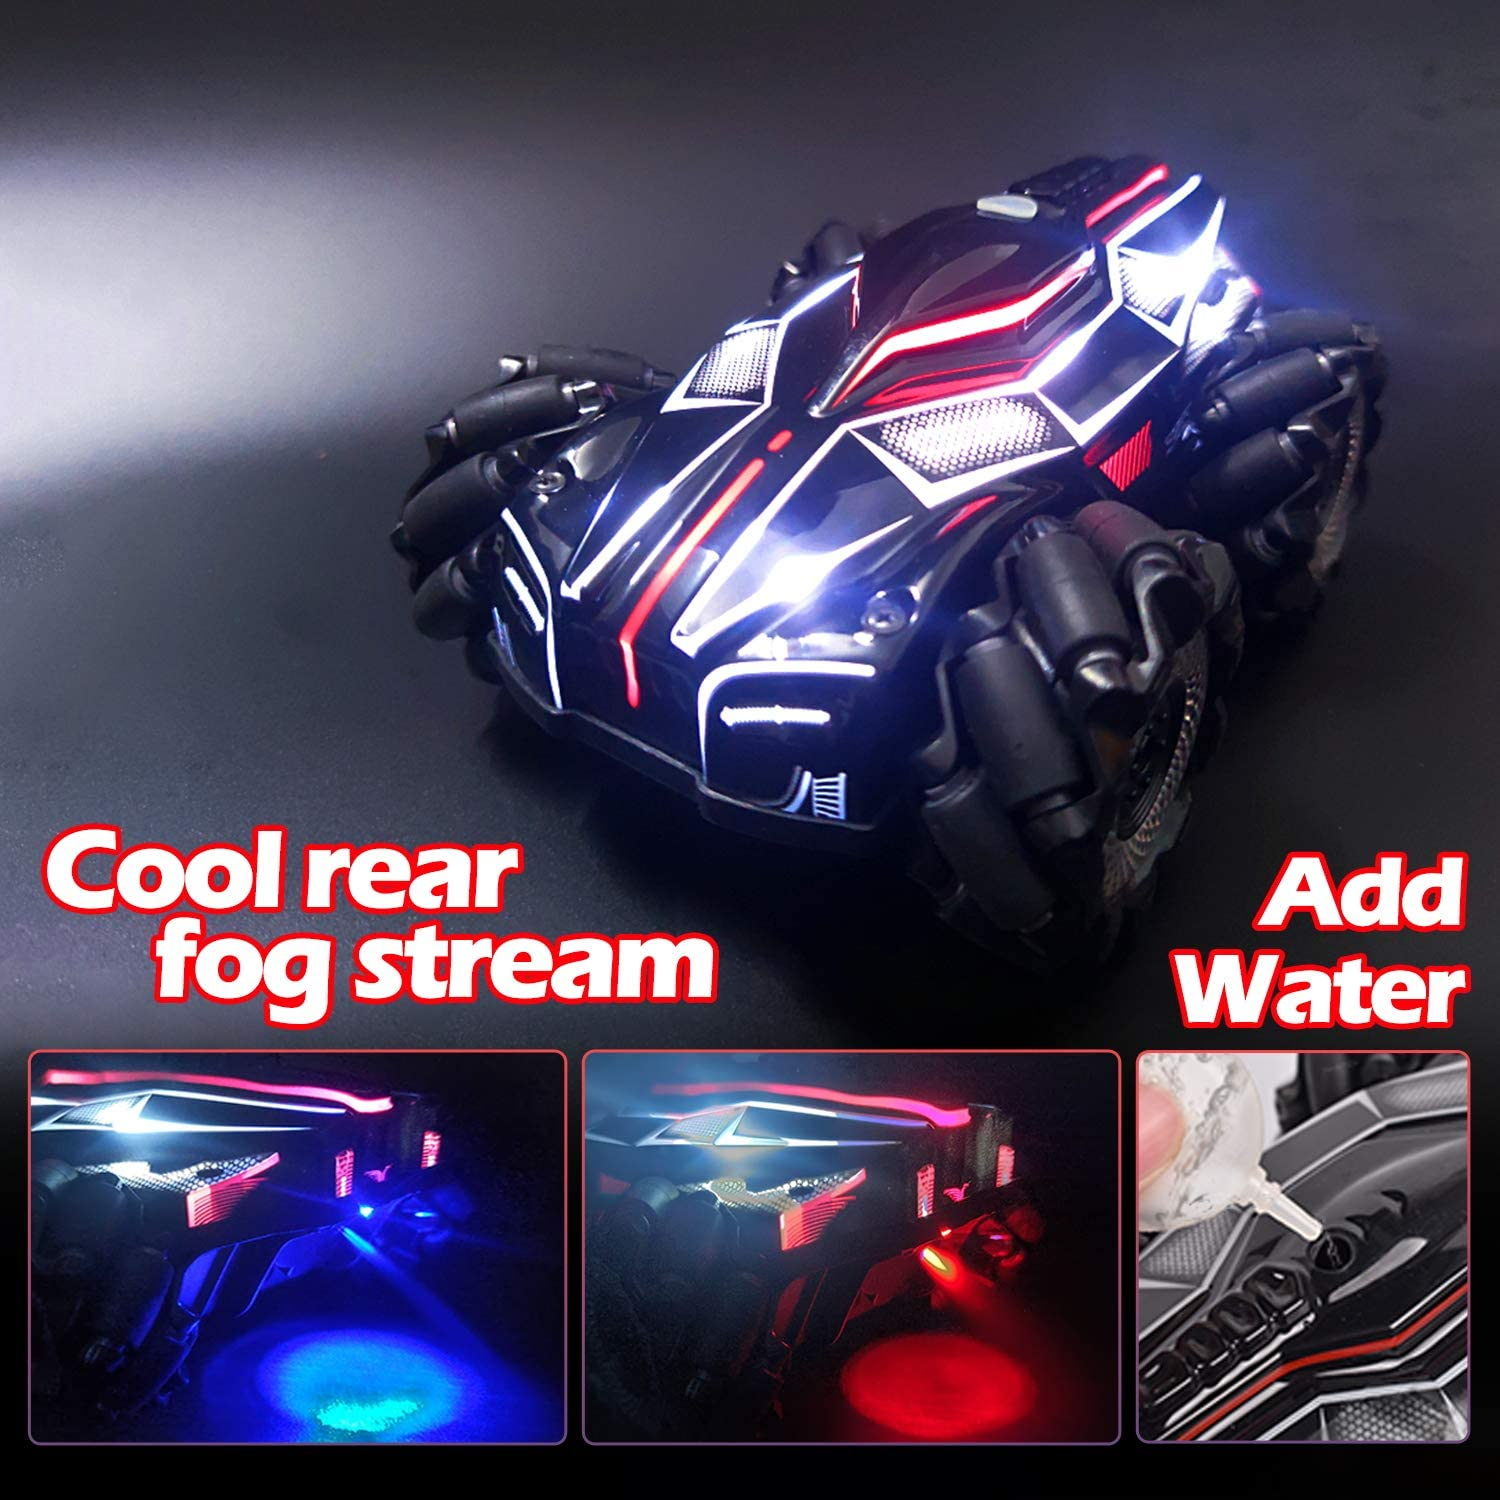 HR Fog Remote Control Car for Kids High Speed LED Light Race RC Car,Rear Fog Stream 4WD 2.4GHz Double Sided Rotating 360/°Flips Vehicles Birthday Gifts for Boys and Girls